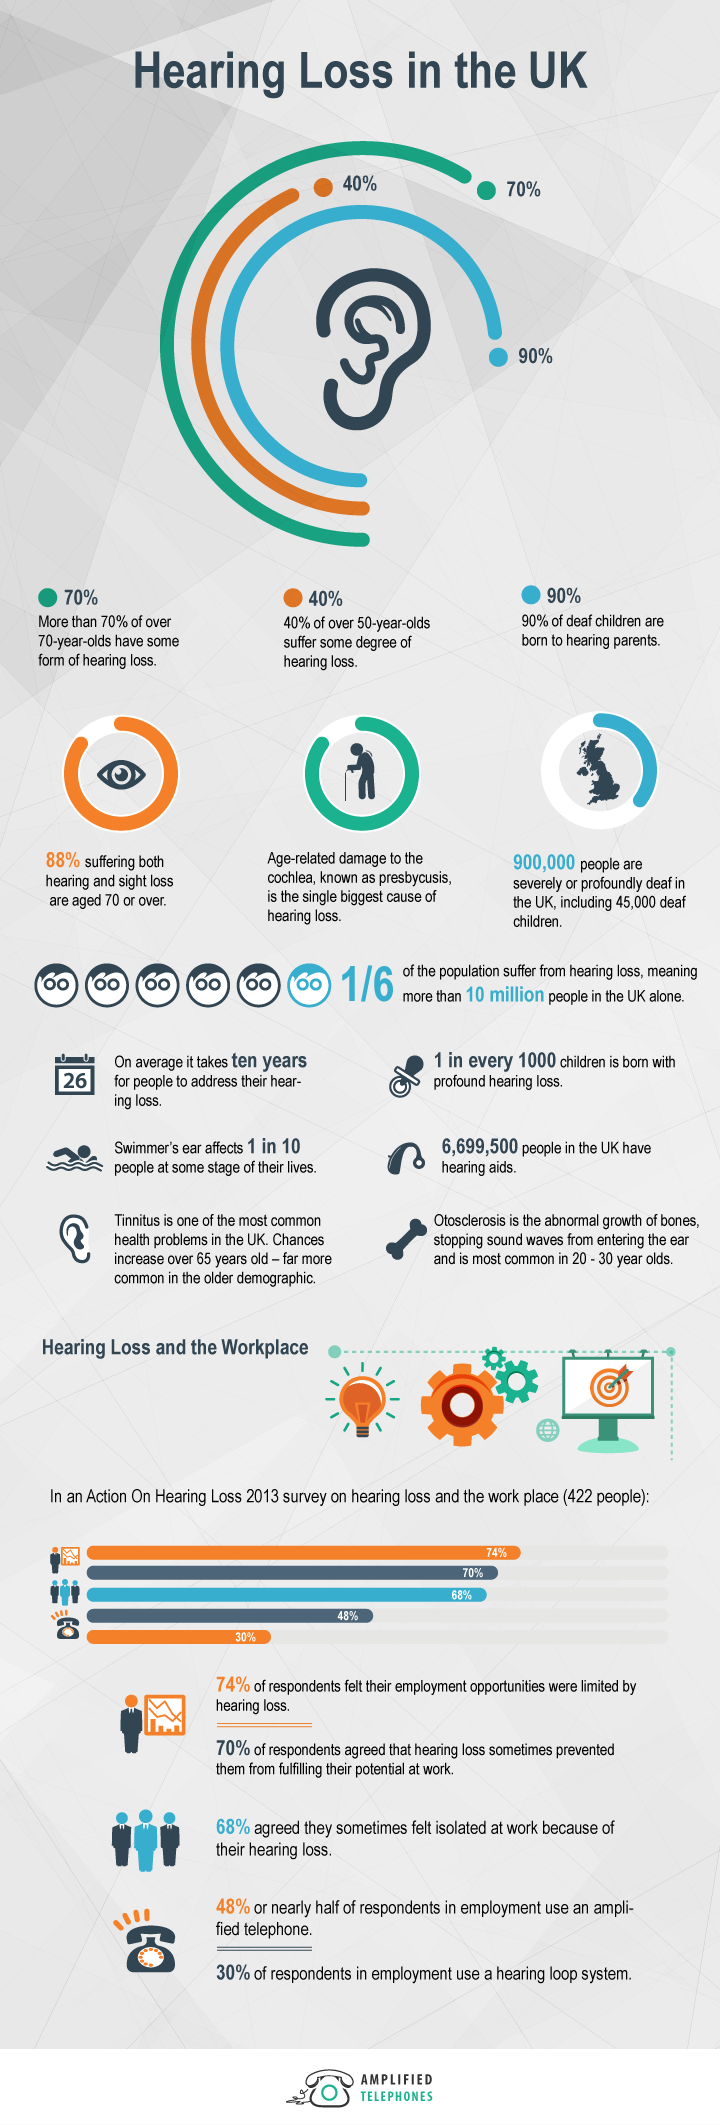 Learn More About Hearing Loss in the UK